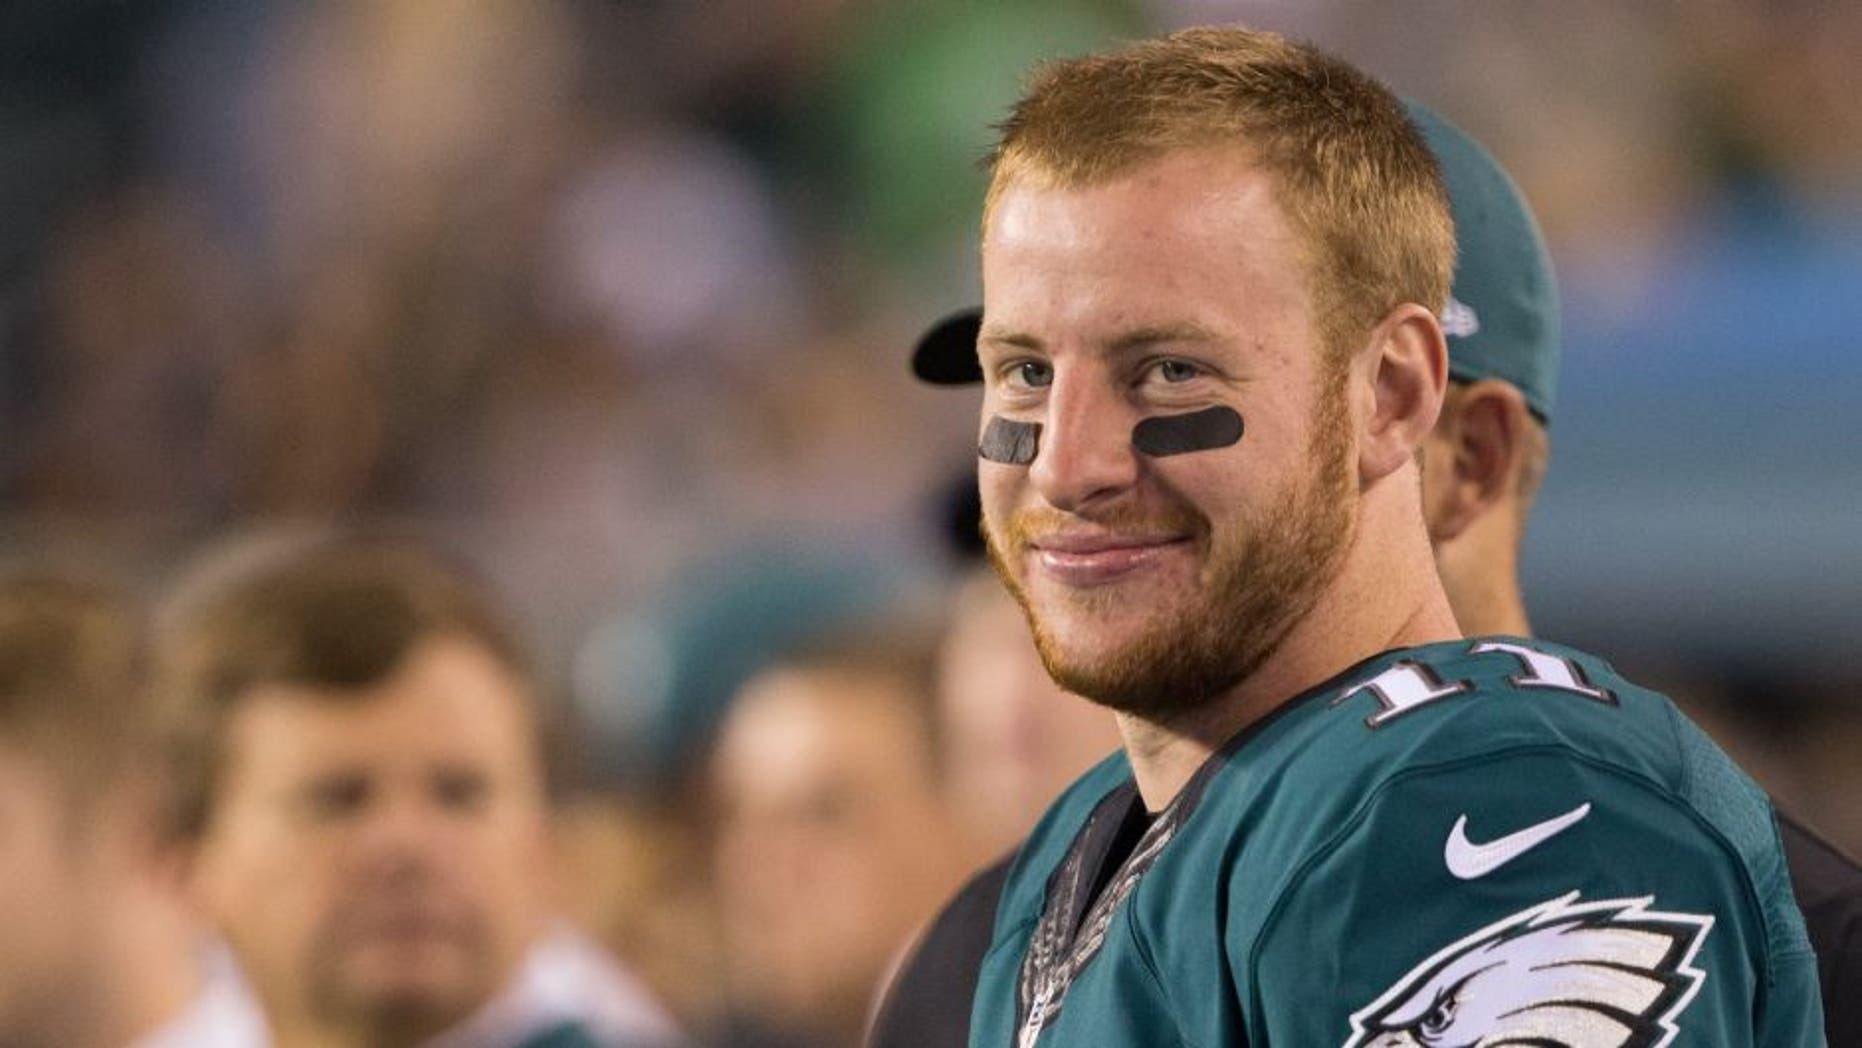 Sep 25, 2016; Philadelphia, PA, USA; Philadelphia Eagles quarterback Carson Wentz (11) on the sideline during action against the Pittsburgh Steelers at Lincoln Financial Field. The Philadelphia Eagles won 34-3. Mandatory Credit: Bill Streicher-USA TODAY Sports